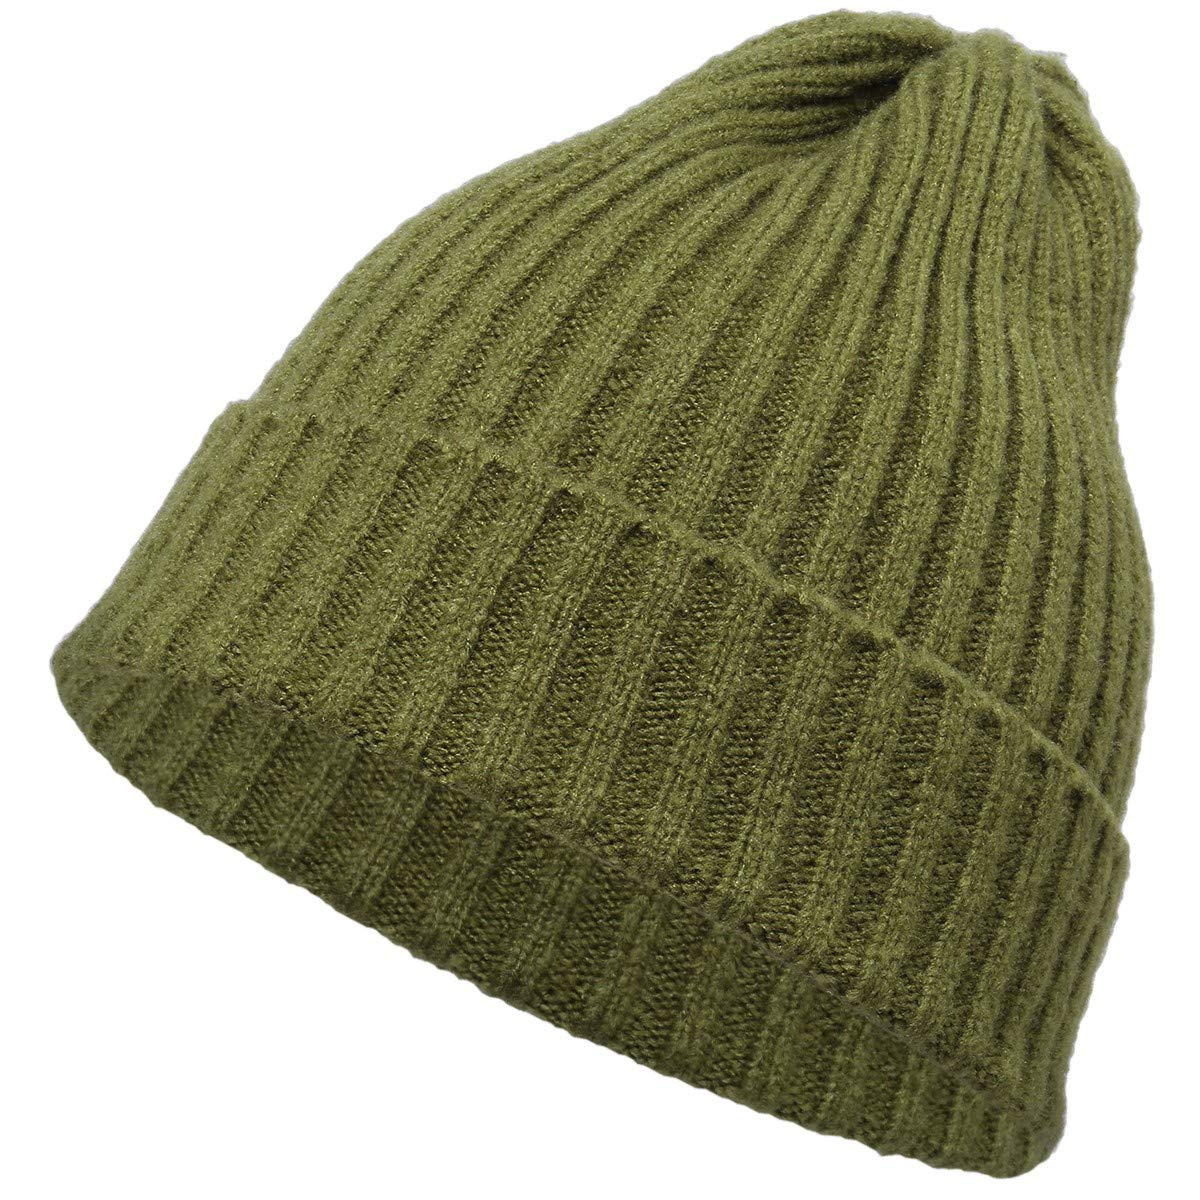 d60342c4275 Samtree Beanie Knit Hat Warm Winter Daily Slouchy Skull Beanies Cap for  Women Kids(Army Green) at Amazon Women s Clothing store